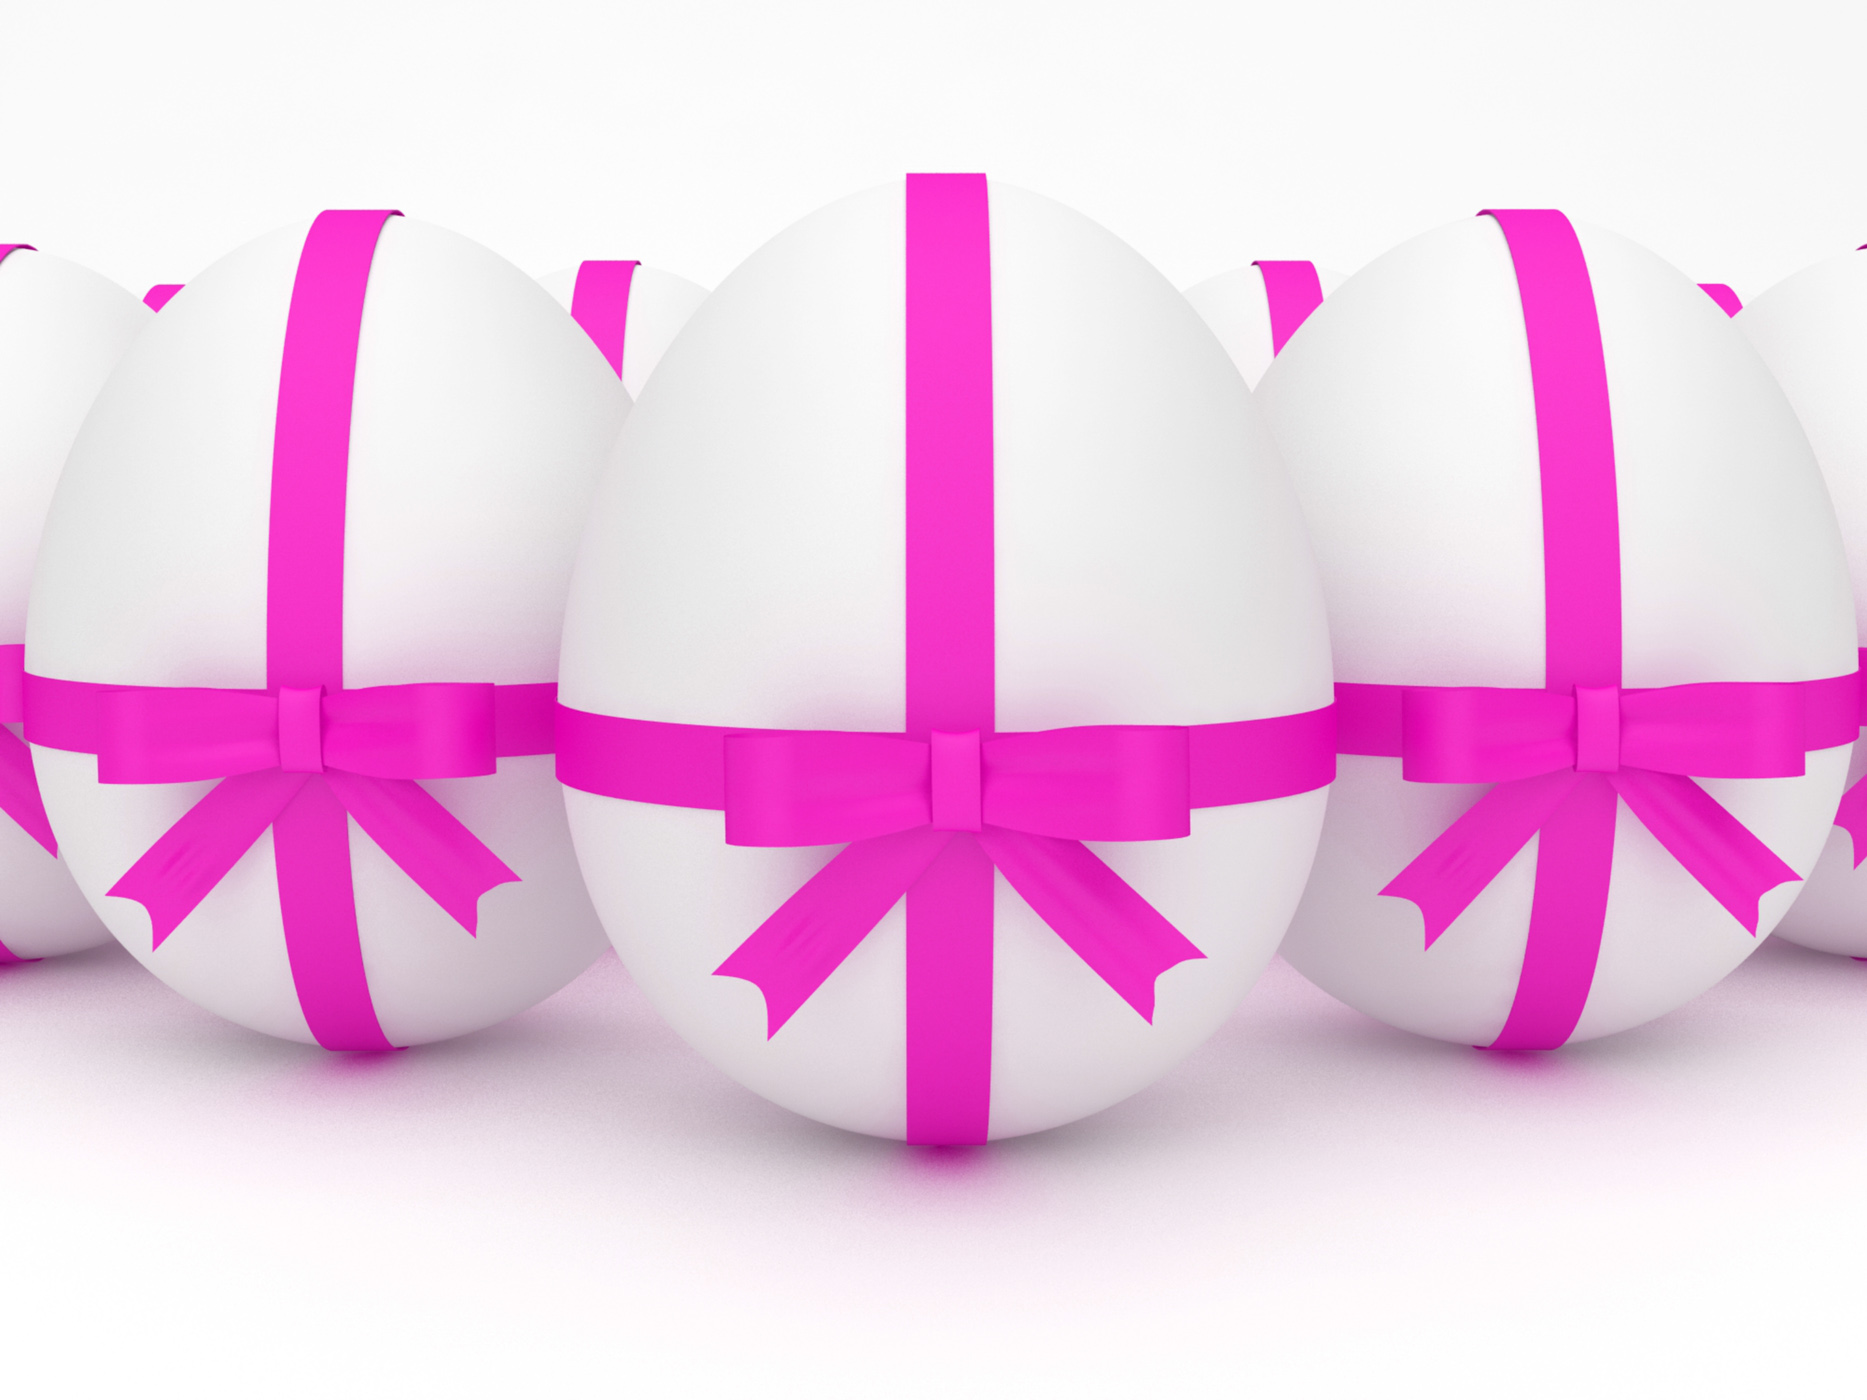 Easter eggs represents background backdrop and abstract photo